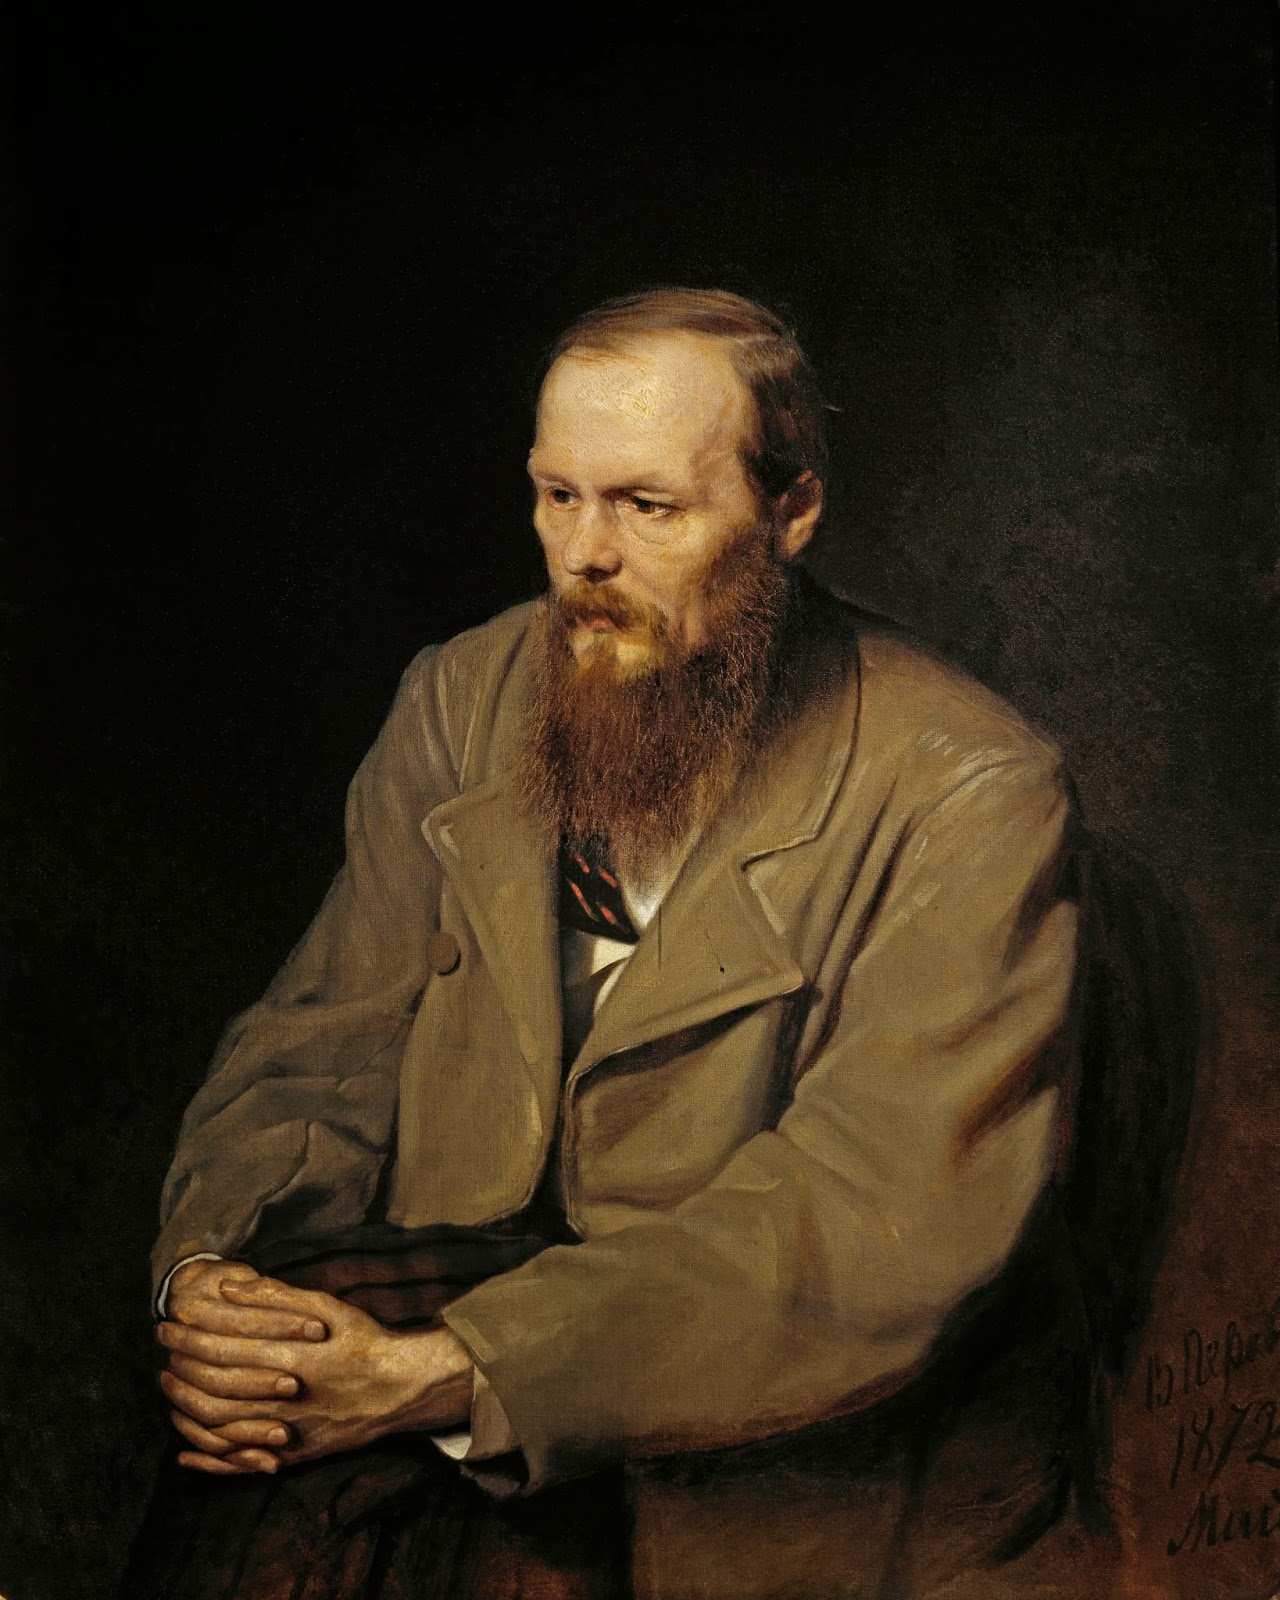 45 Psychological, Social, Political & Spiritual Quotes By Fyodor Dostoyevsky